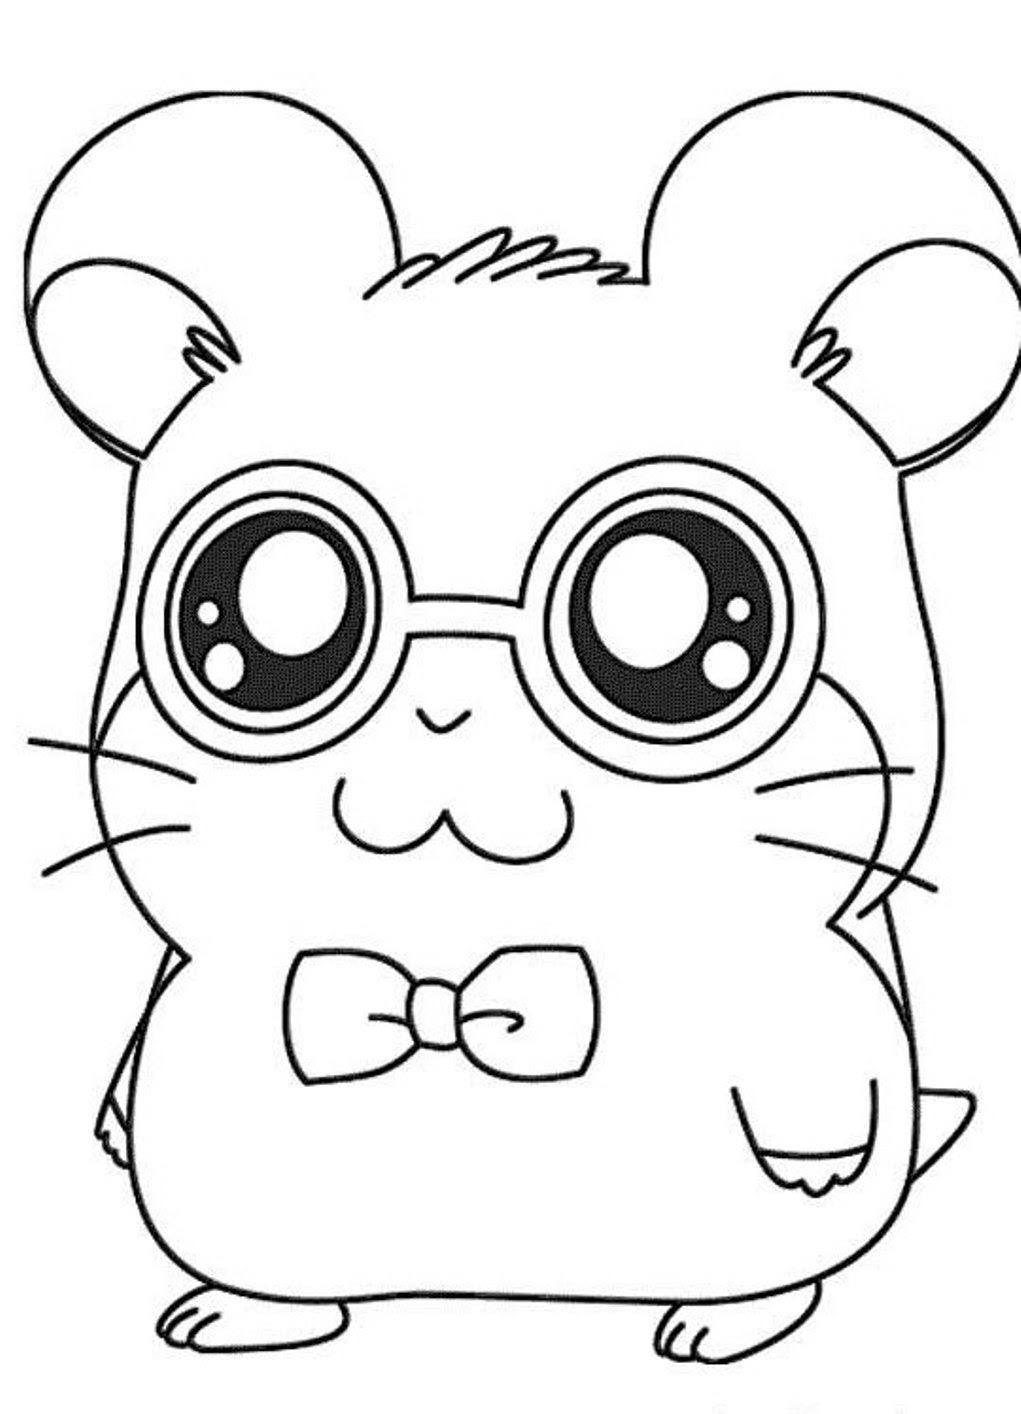 Cute Coloring Pages For Adults at GetDrawings | Free download